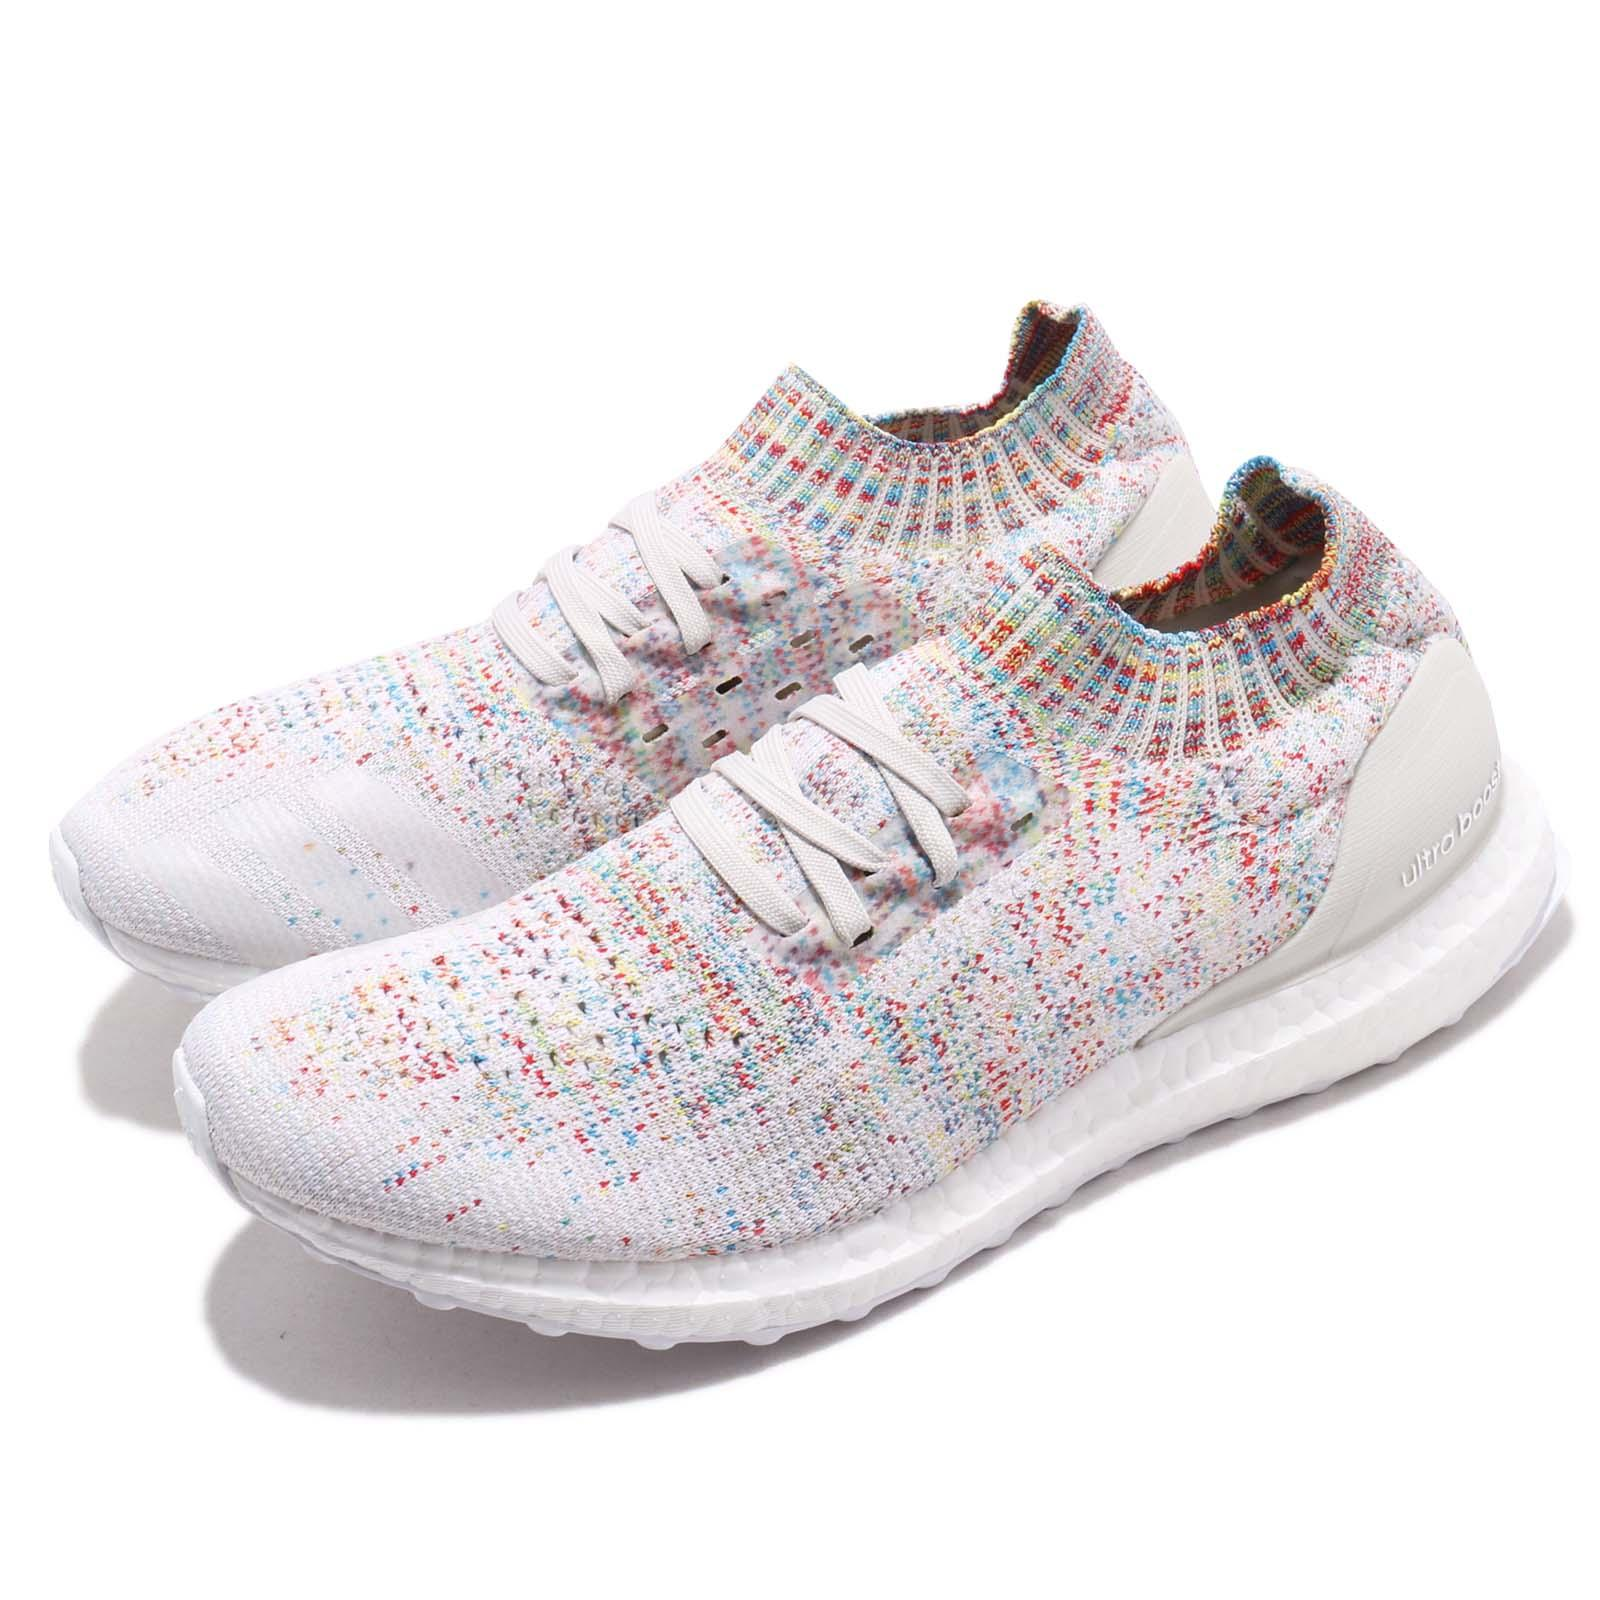 871e09c0d9dab Details about adidas UltraBOOST Uncaged White Shock Cyan Multi-Color Men  Women Shoes B37691